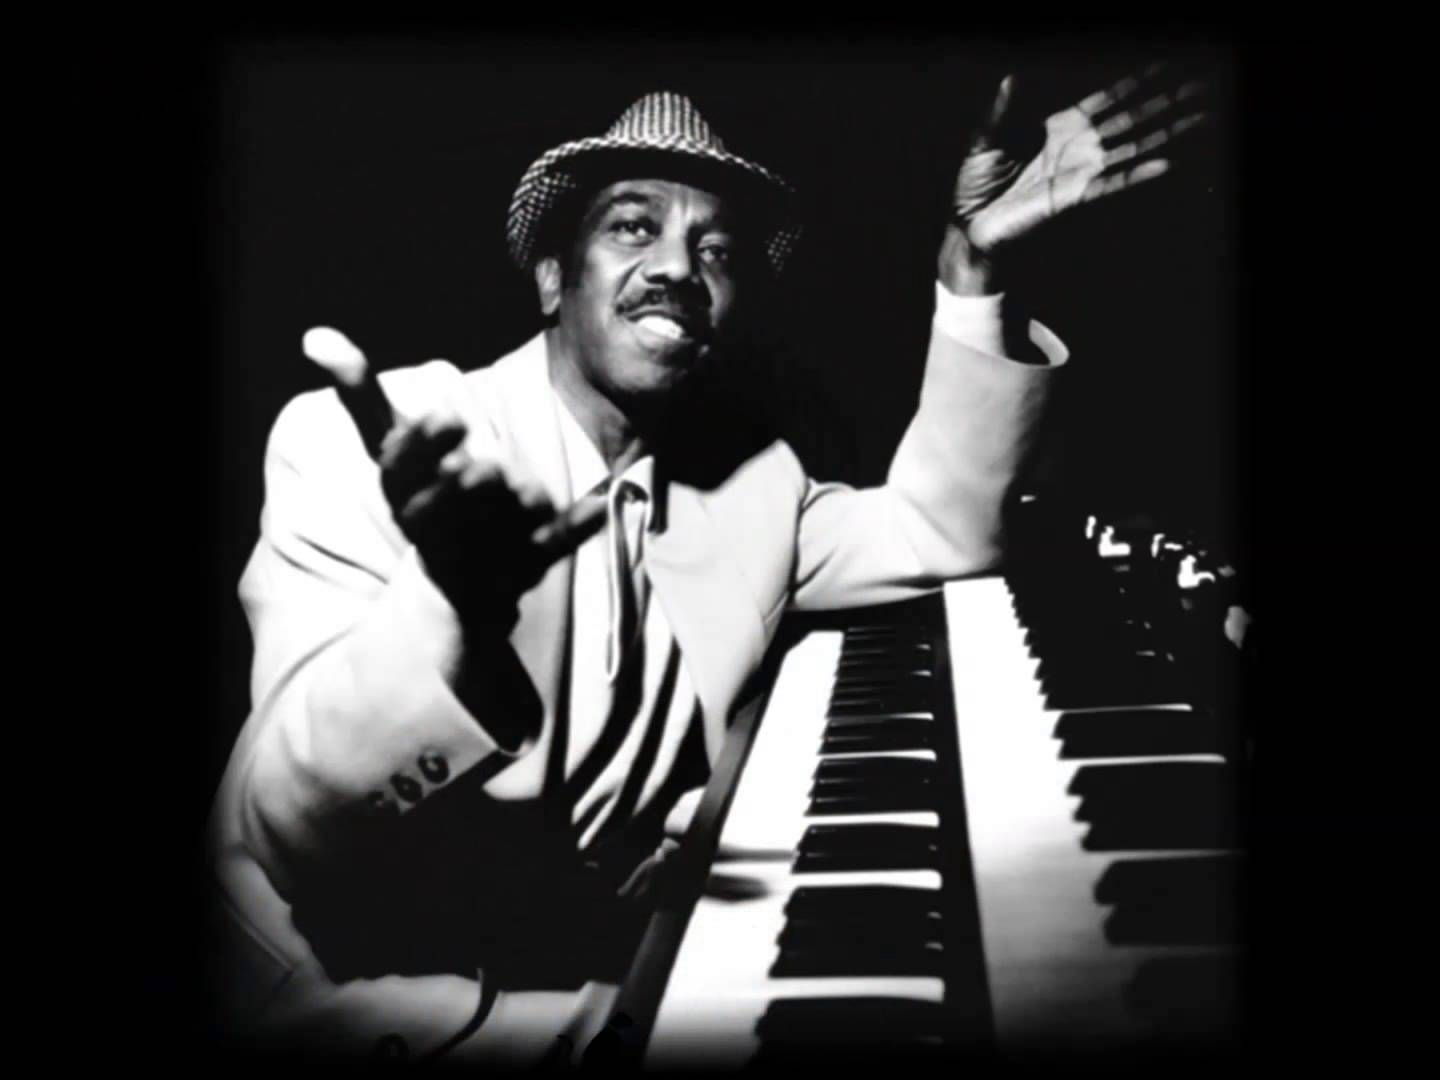 JIMMY SMITH FEAT. ETTA JAMES - I JUST WANNA MAKE LOVE TO YOU